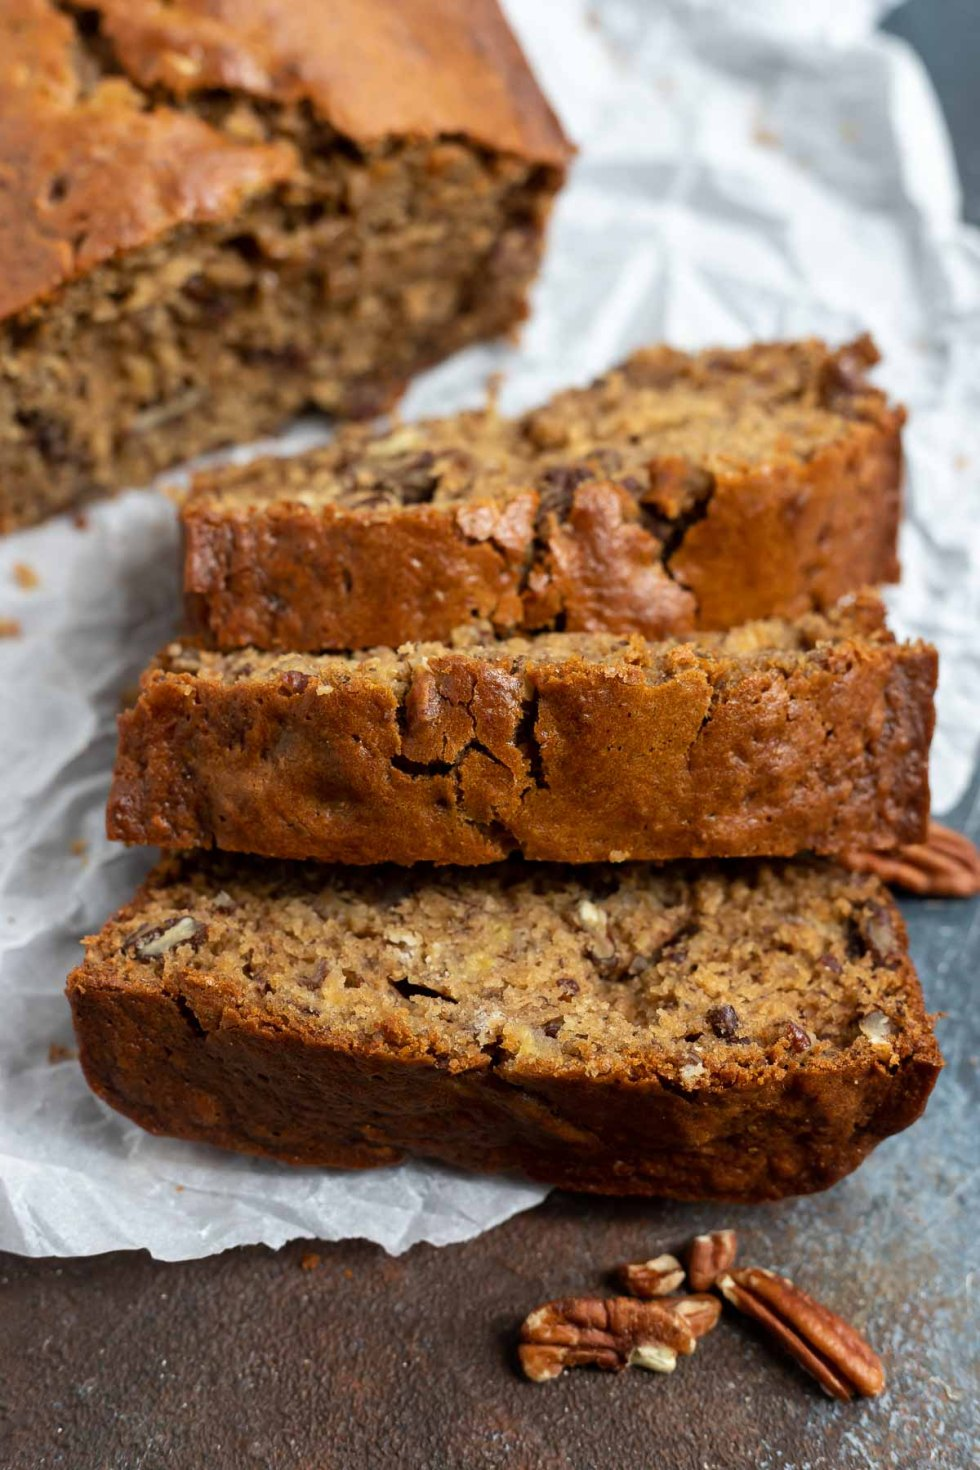 slices of baked banana bread